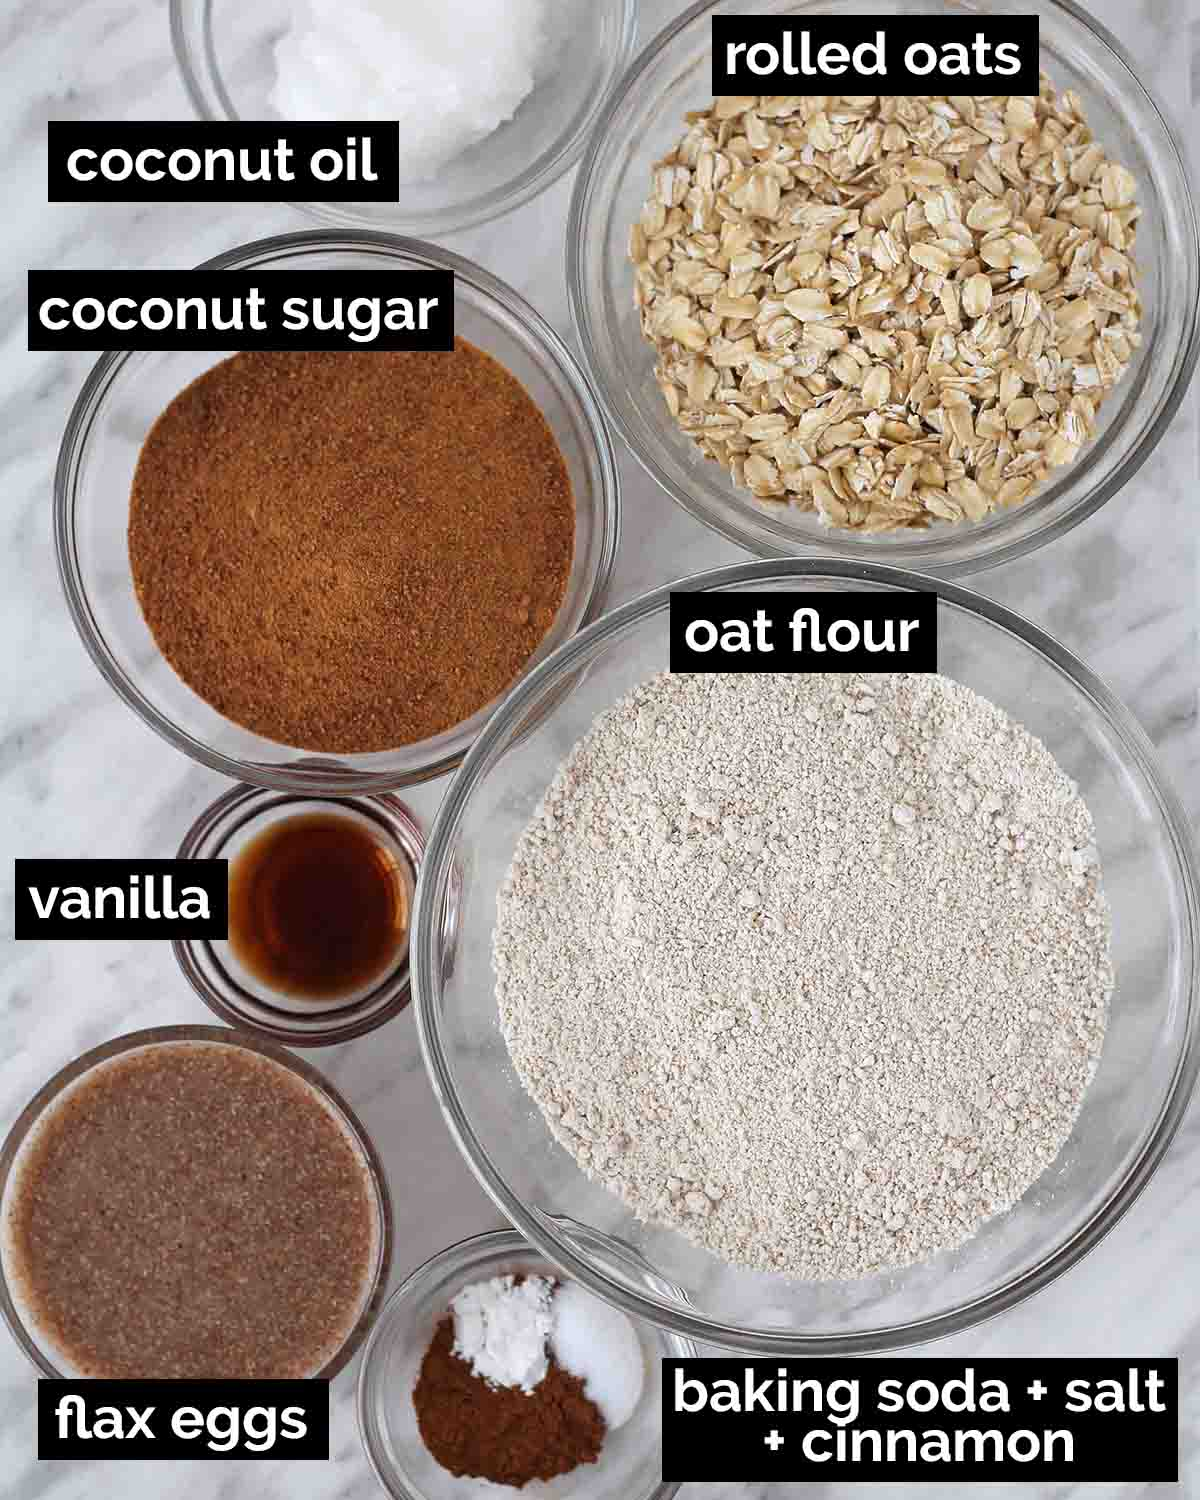 An overhead shot showing the ingredients needed to make dairy-free oatmeal cookies.